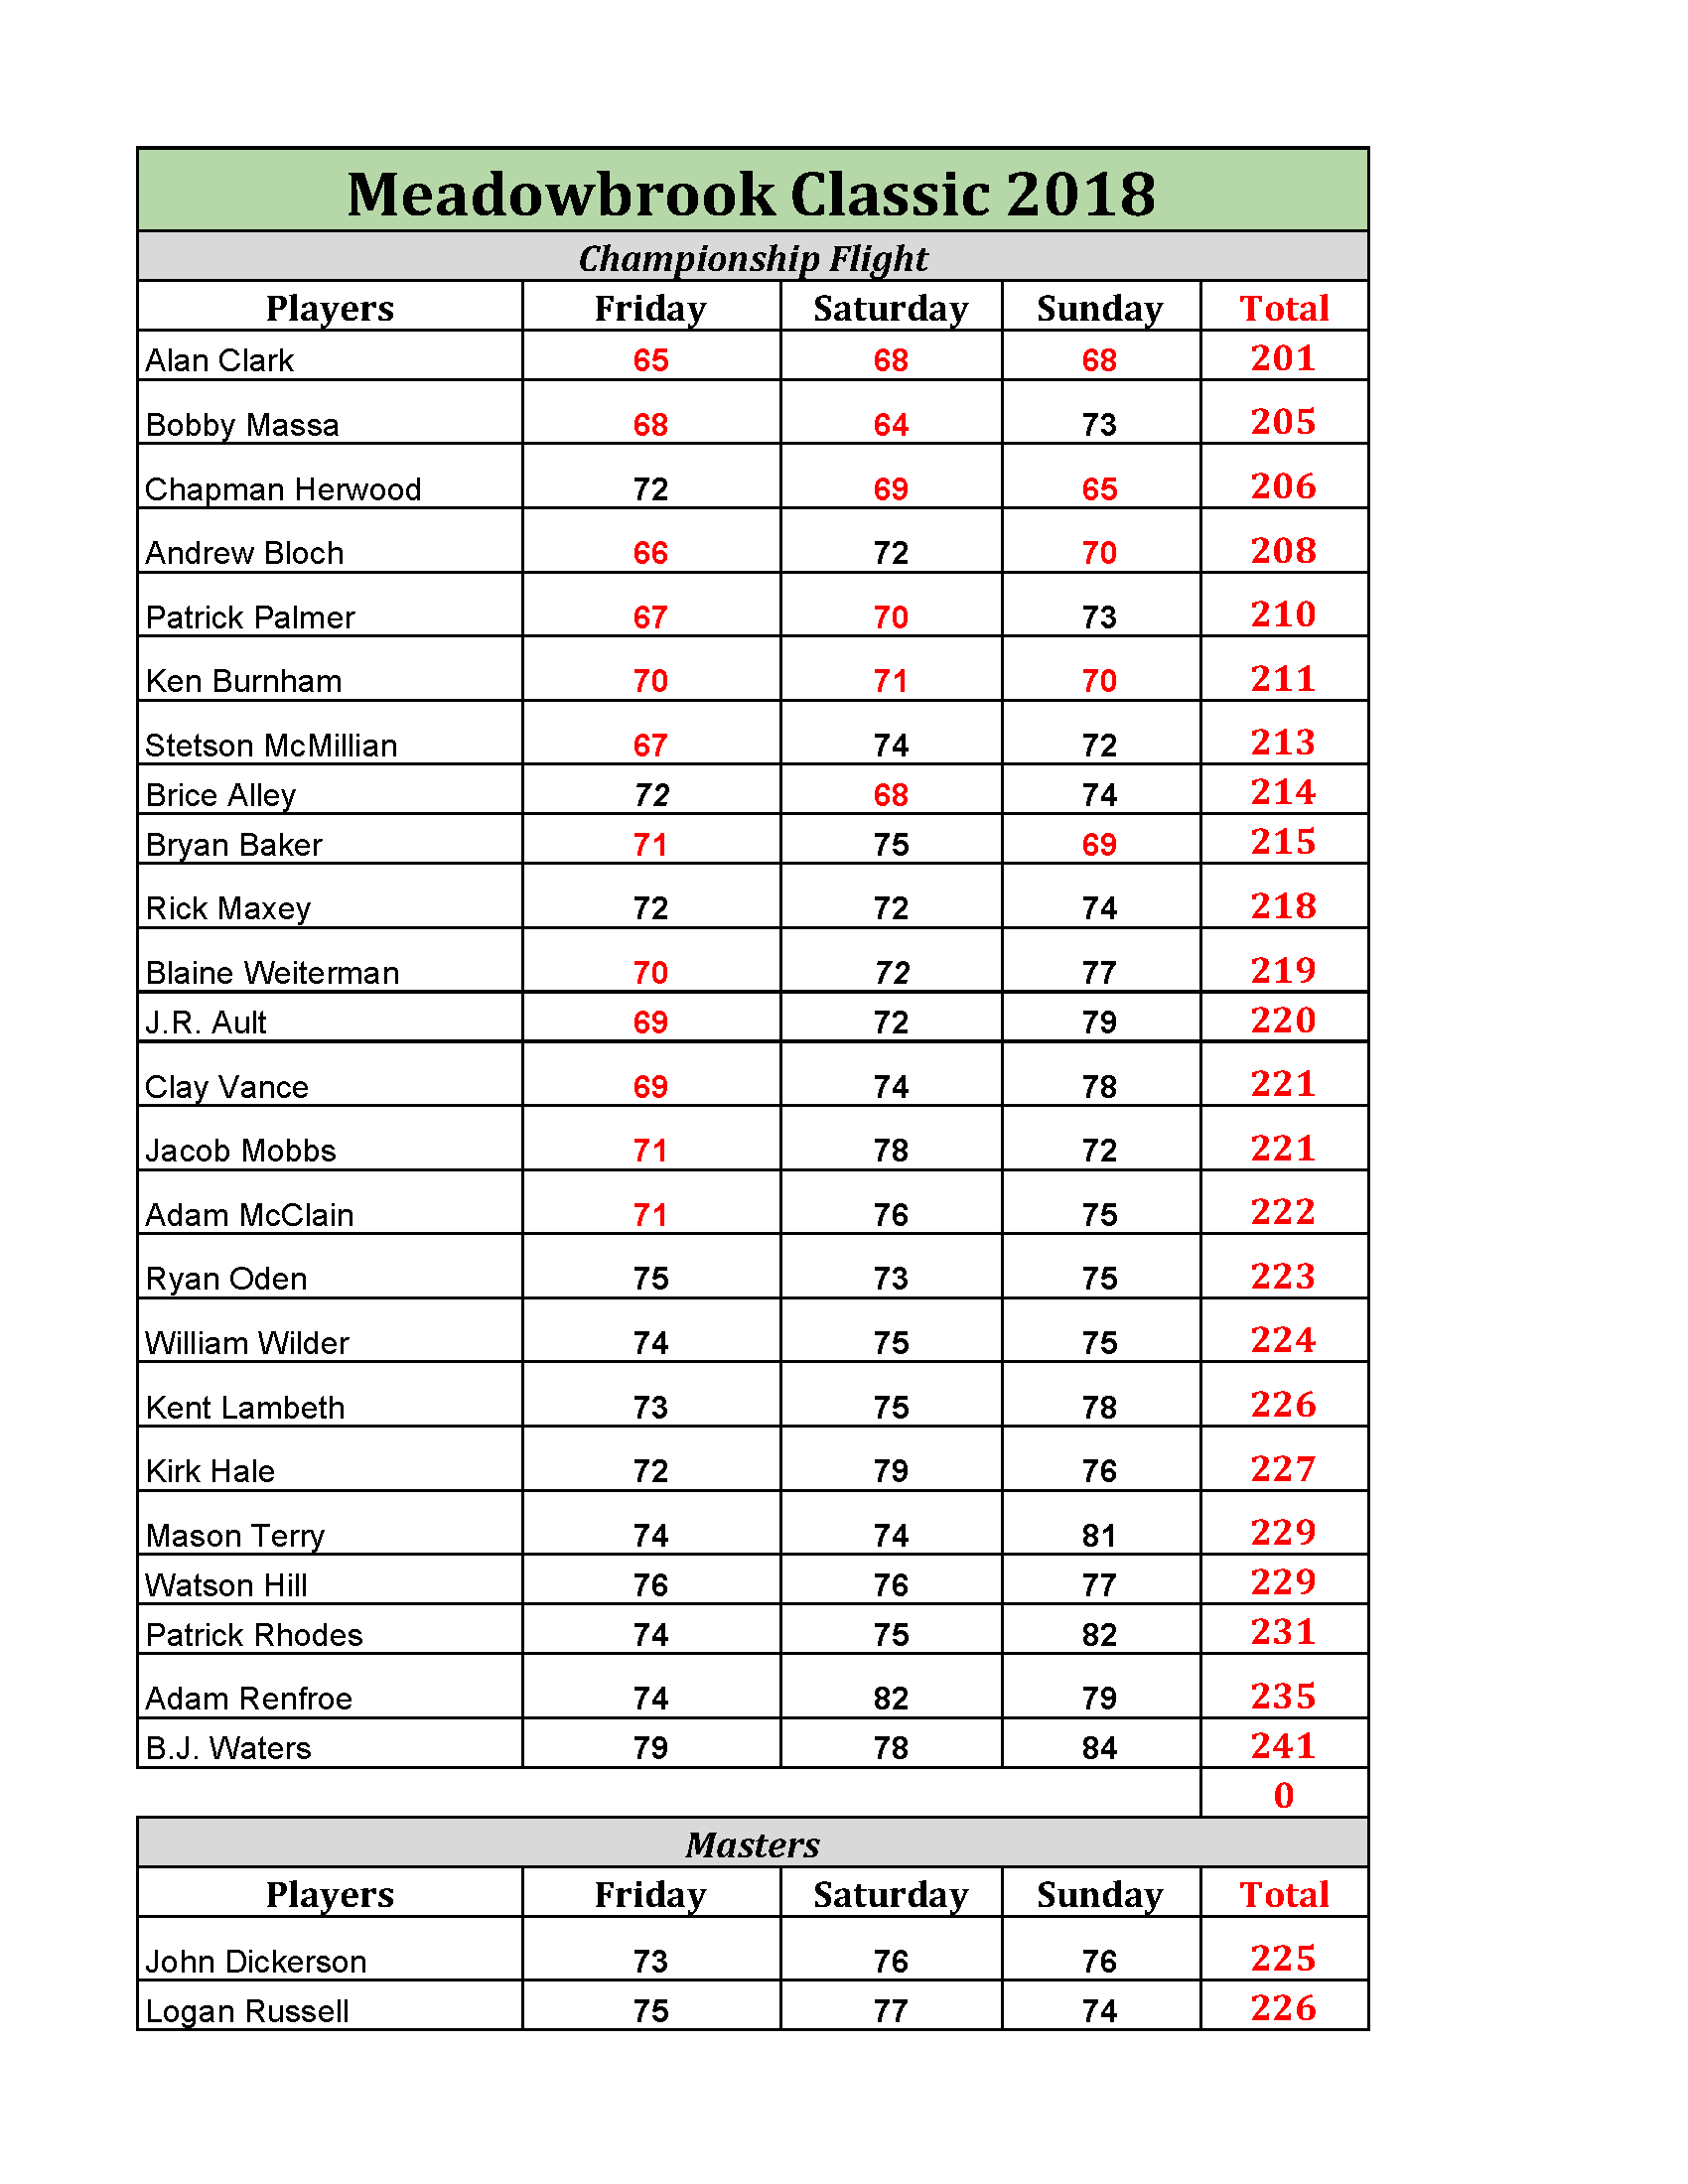 MB_Classic_18_Master.xlsx - Final Scores_Page_1.png